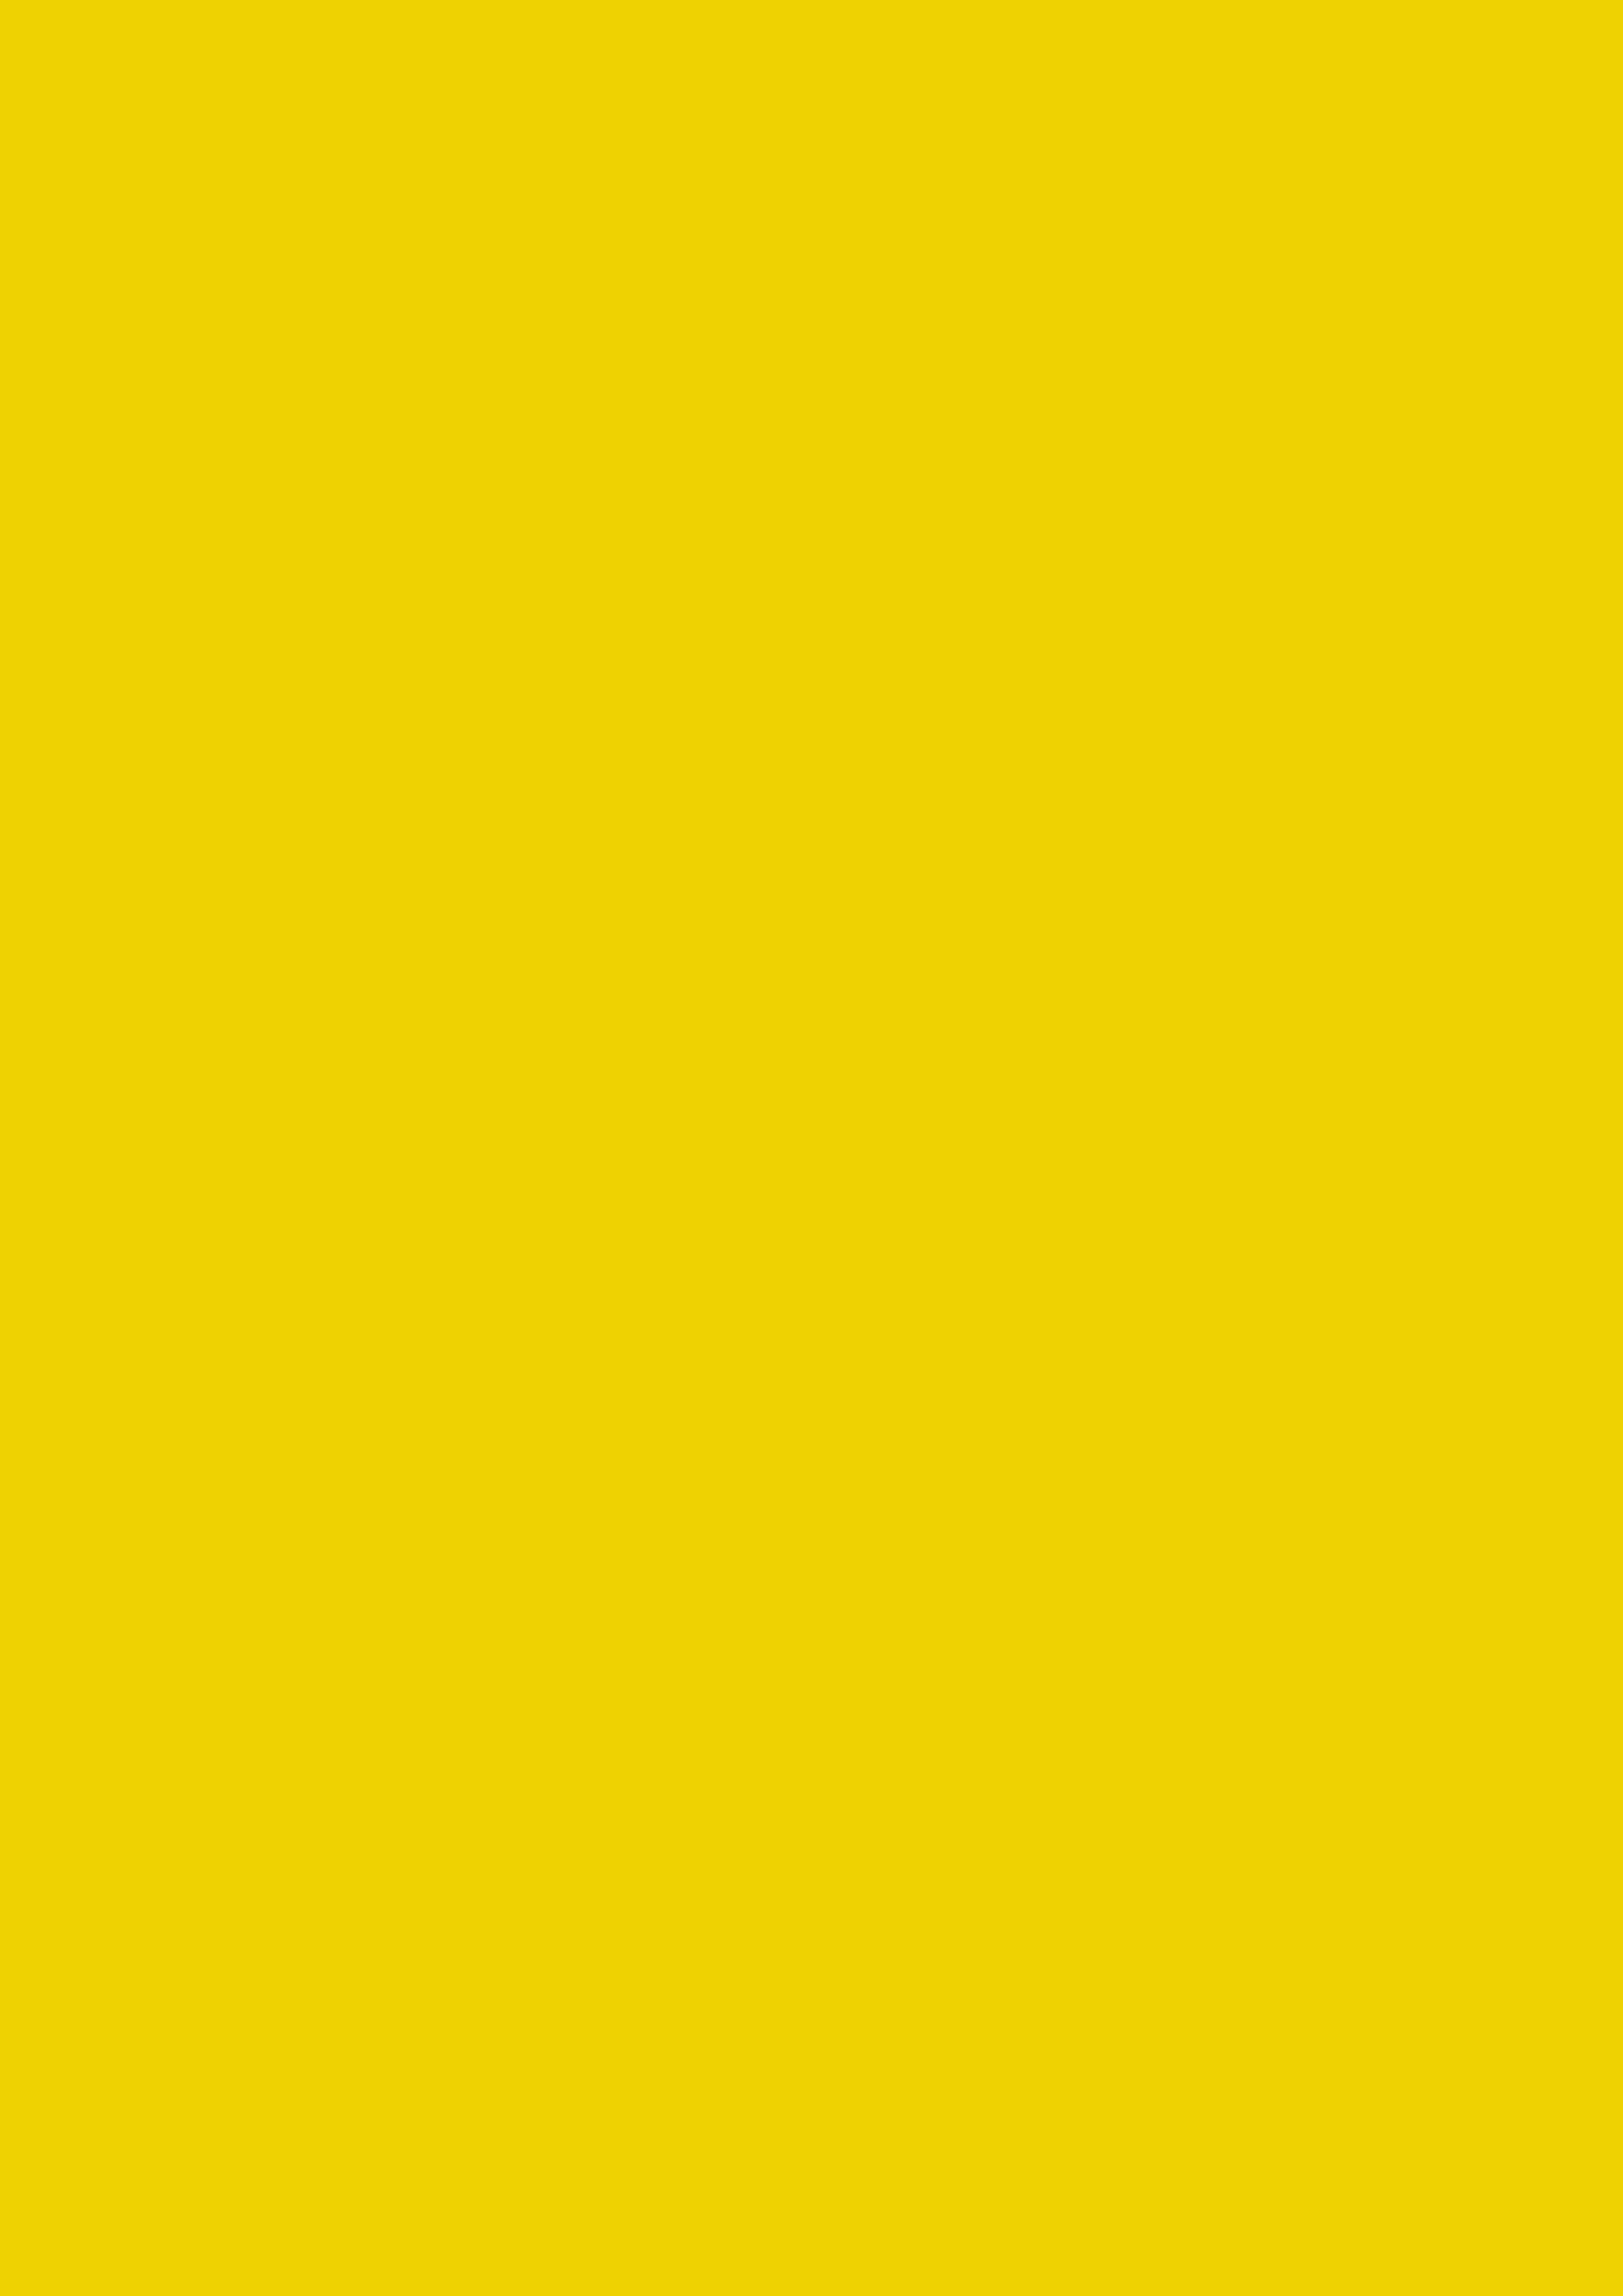 2480x3508 Safety Yellow Solid Color Background